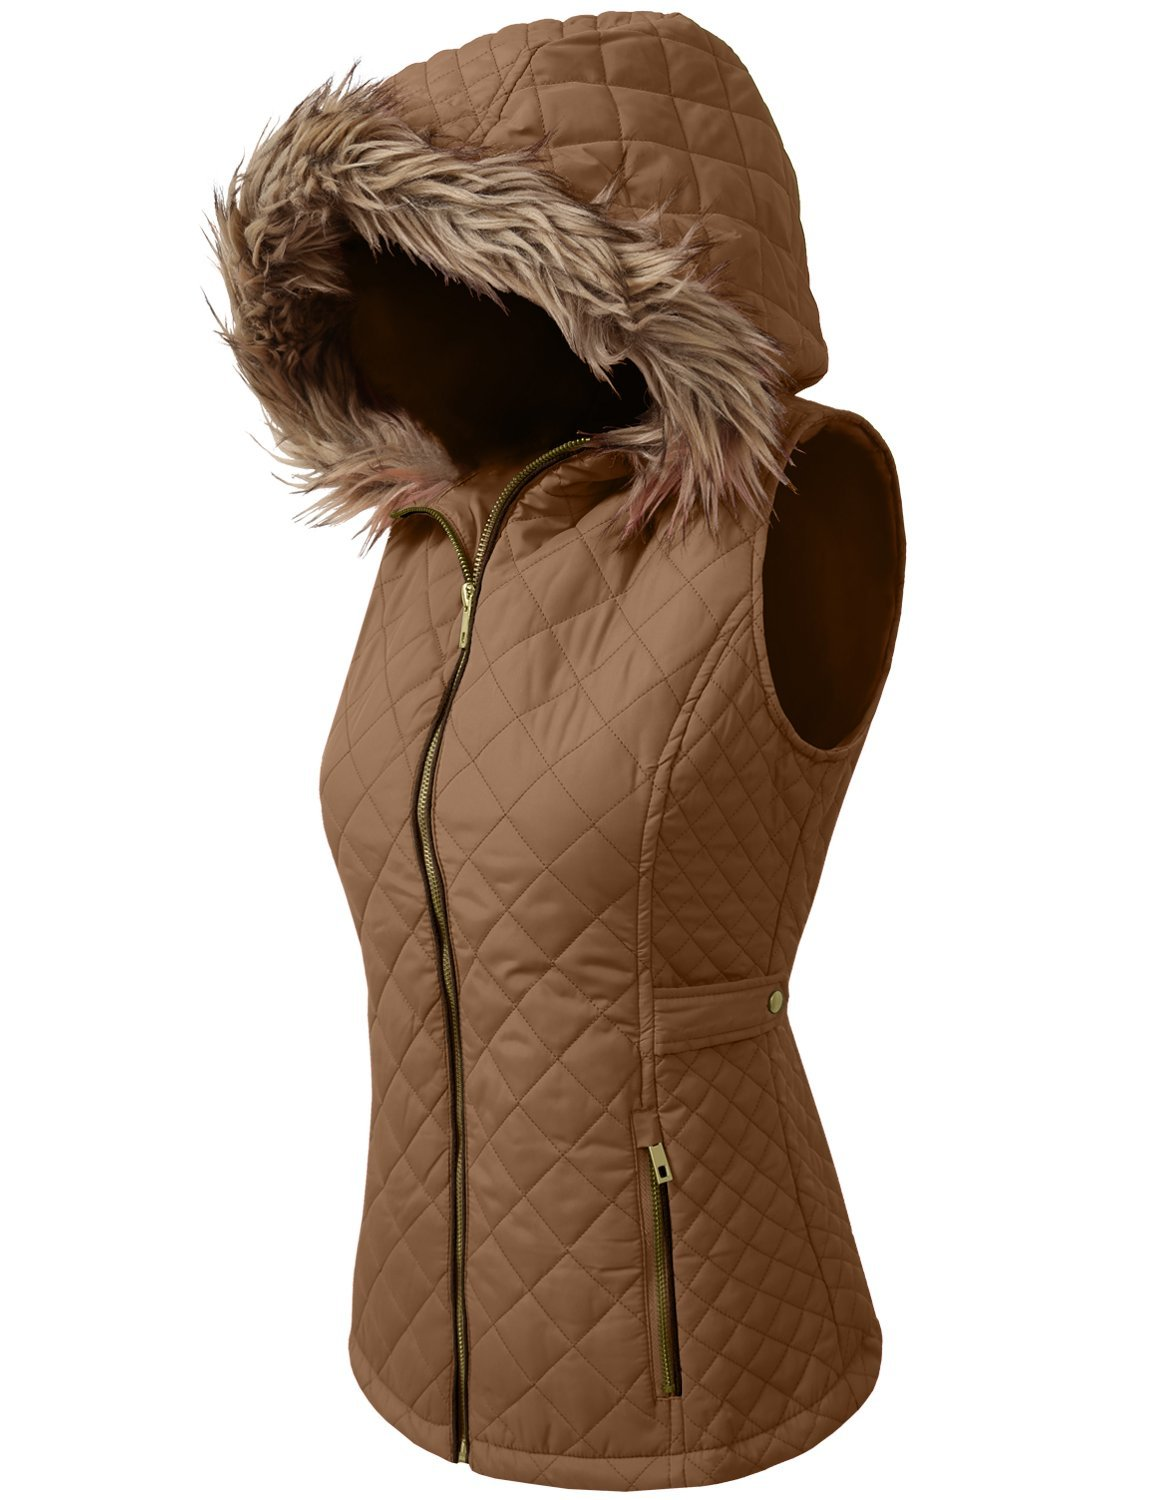 NE PEOPLE Womens Lightweight Quilted Zip Jacket/Vest at Amazon Women's Coats Shop